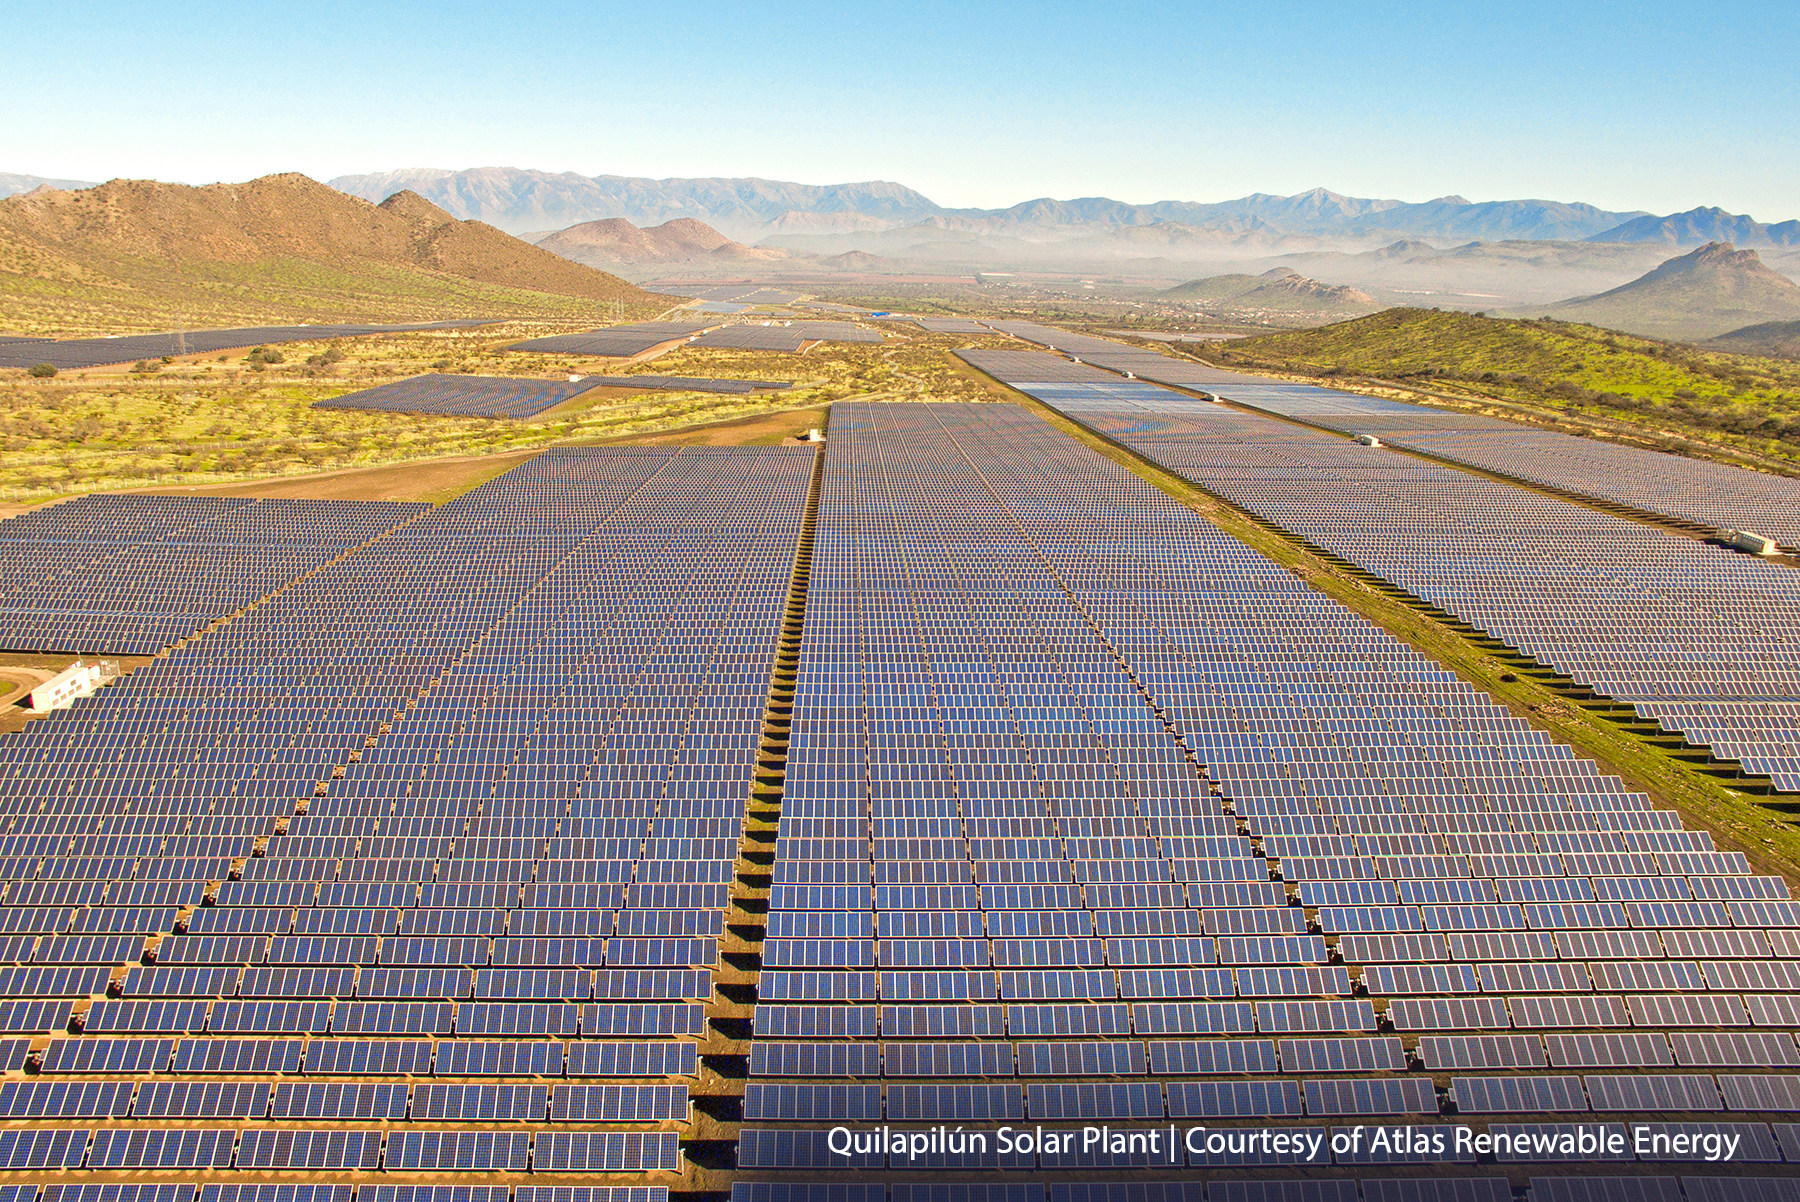 Major PV single-axis tracker firm, NEXTracker has secured a major contract with Latin American renewables firm, Atlas Renewable Energy to deploy its 'TrueCapture' self-adjusting tracker control system across its fleet of PV power plants. Image: NEXTracker